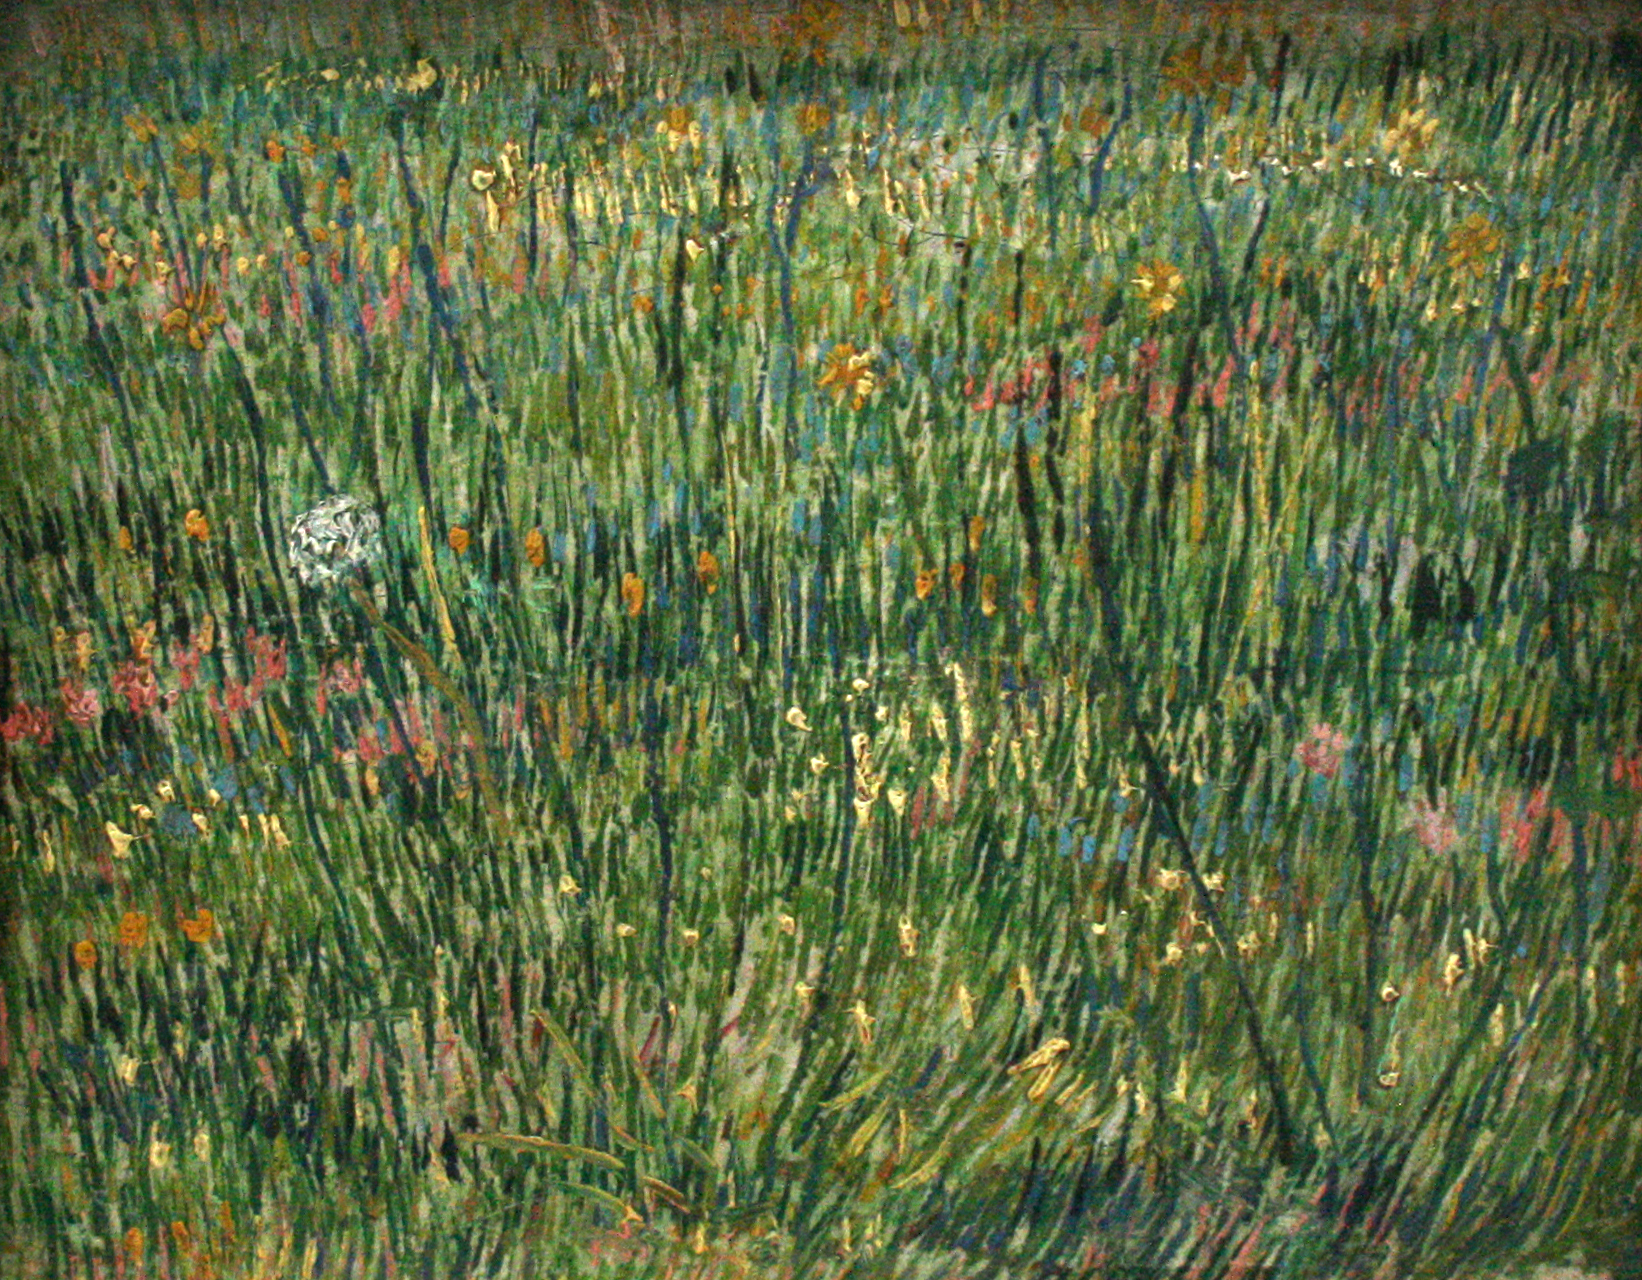 Van Gogh, Patch of grass